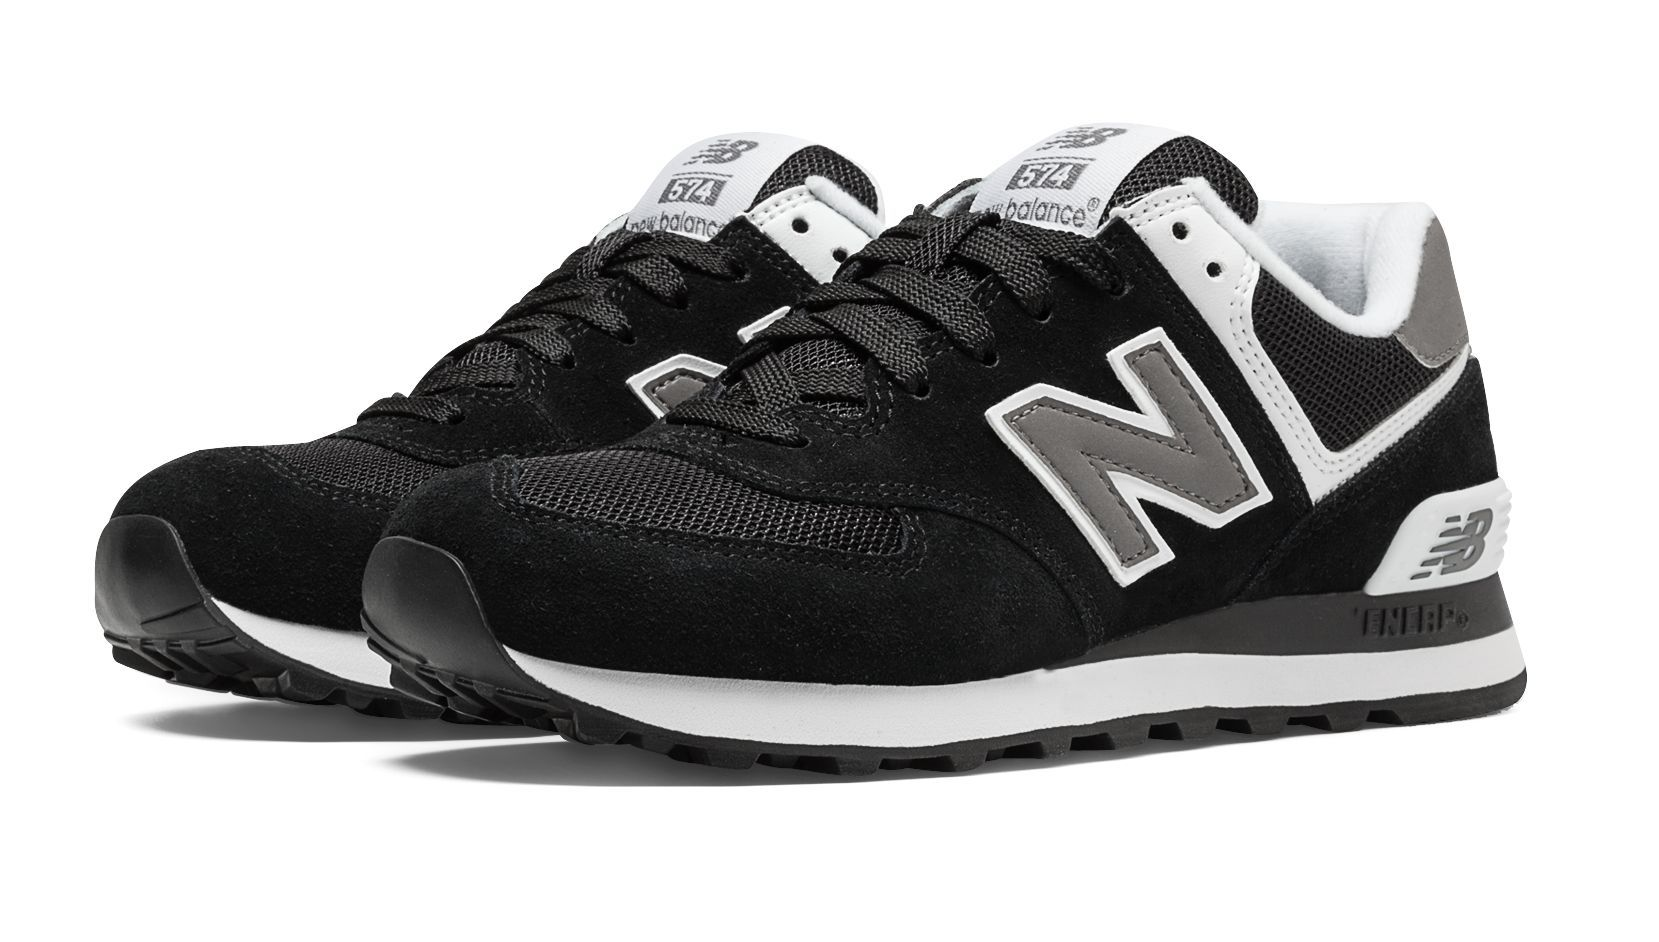 super popular e682e 38a00 574 Core, Black with White | Xmas in 2019 | New balance 574 ...